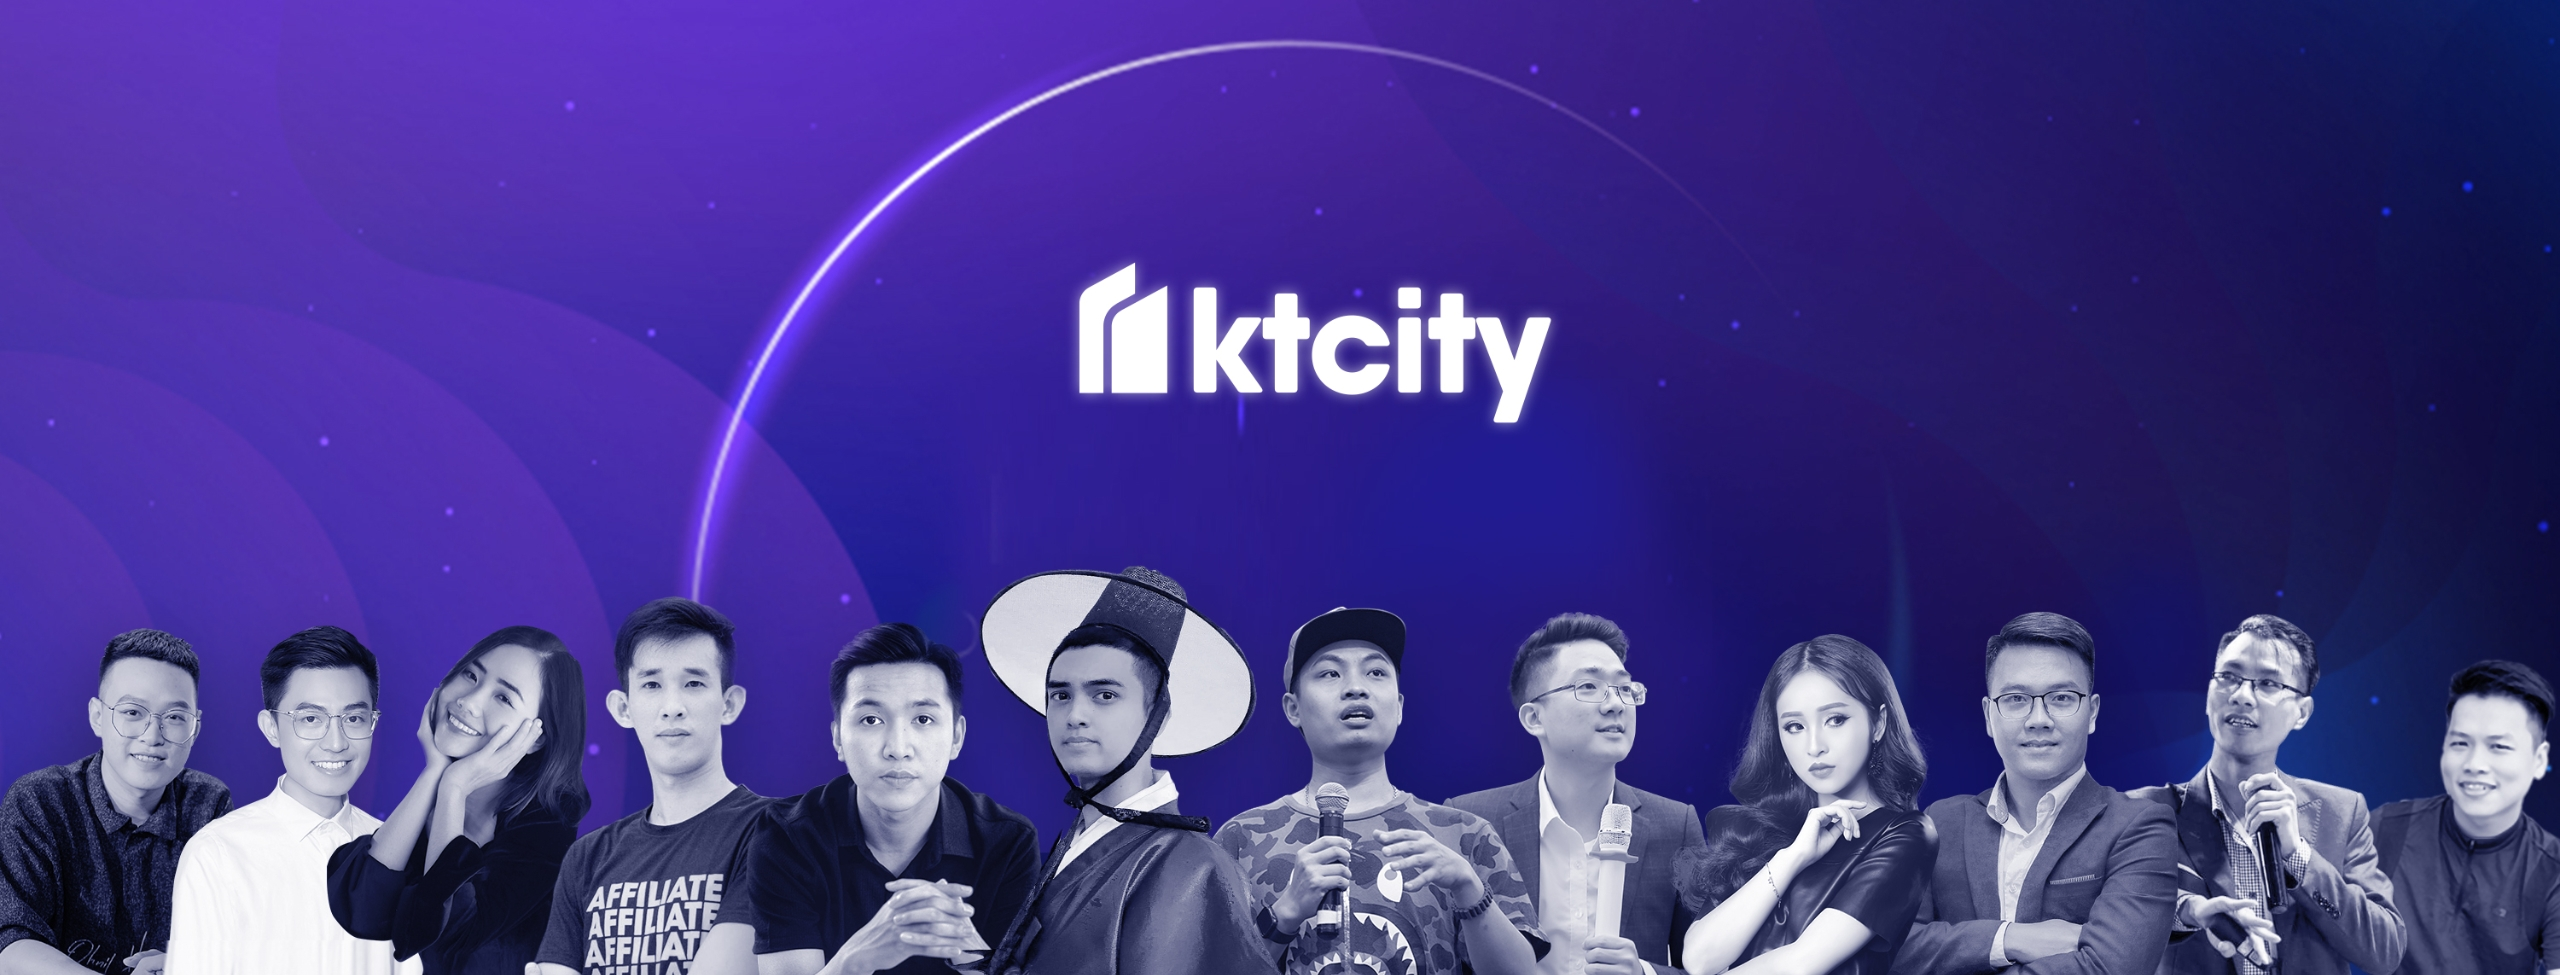 KT (@ktcity) Cover Image